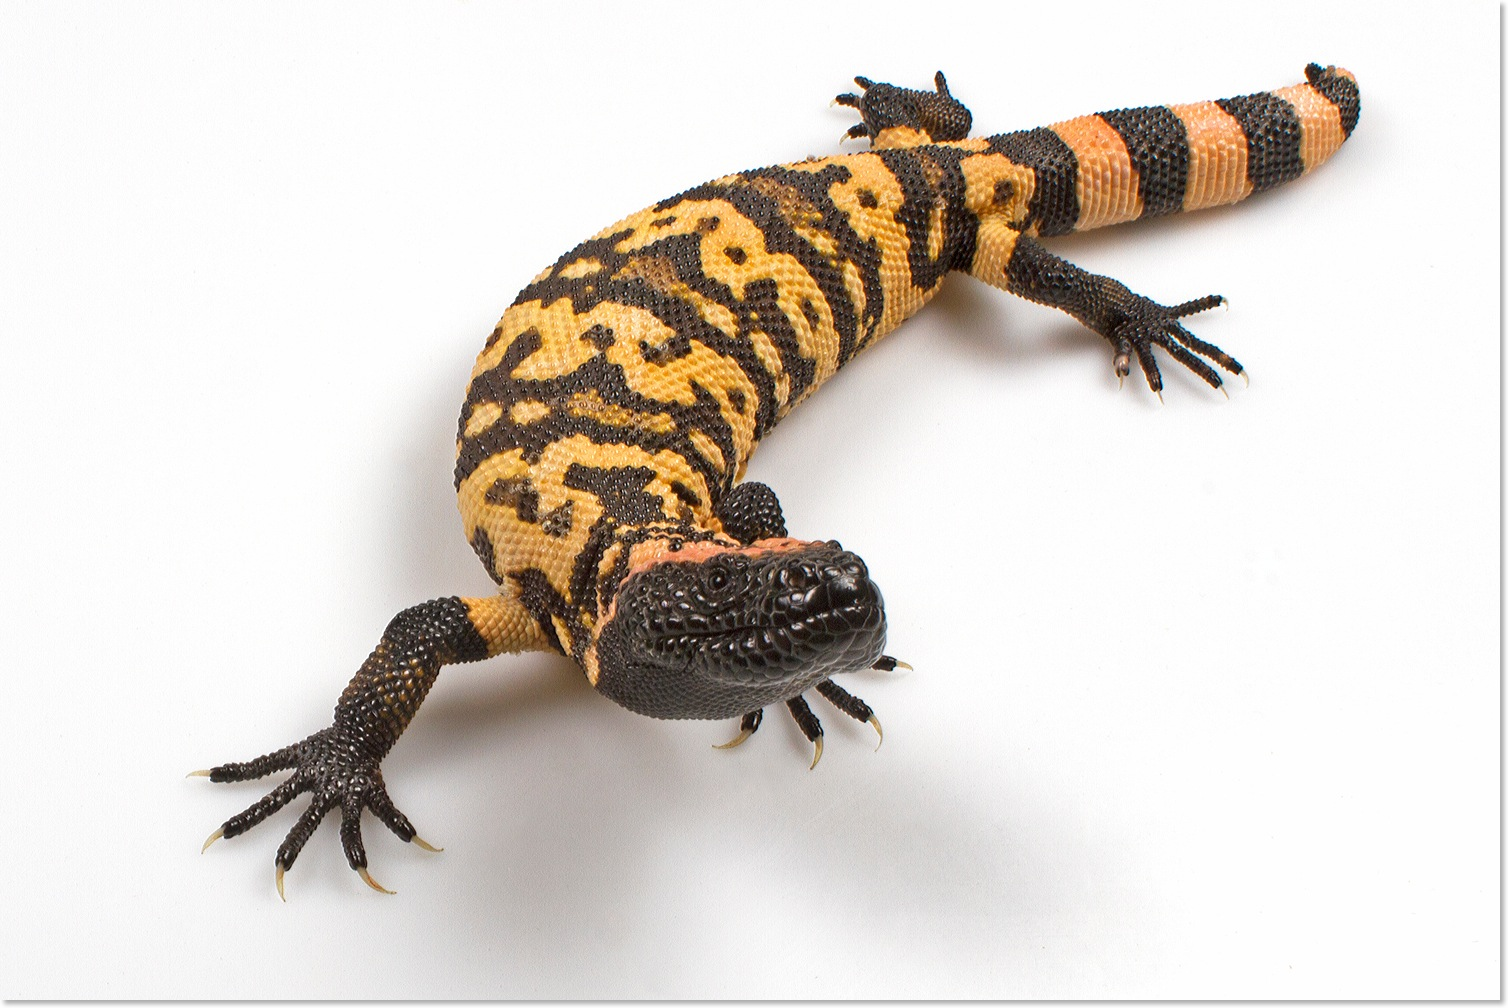 Gila Monster Pictures Kids Search